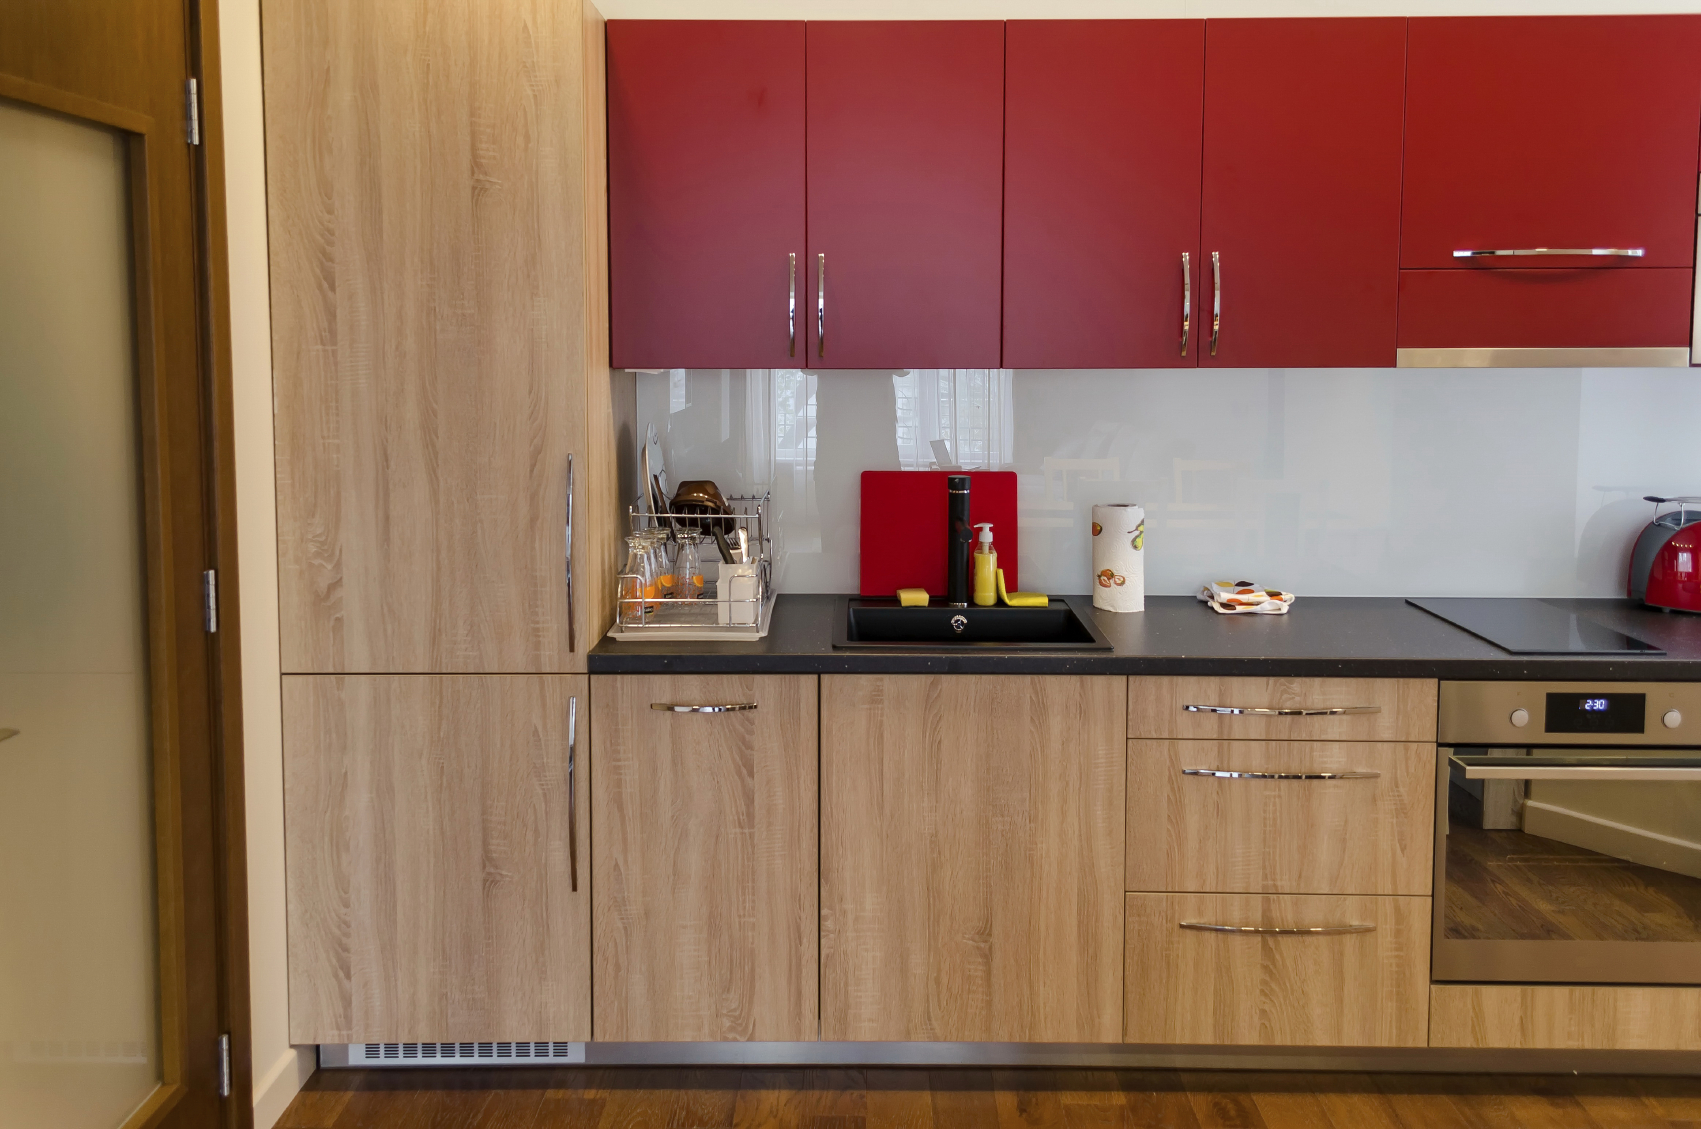 Superior Kitchen Cabinet Designs Of 2015